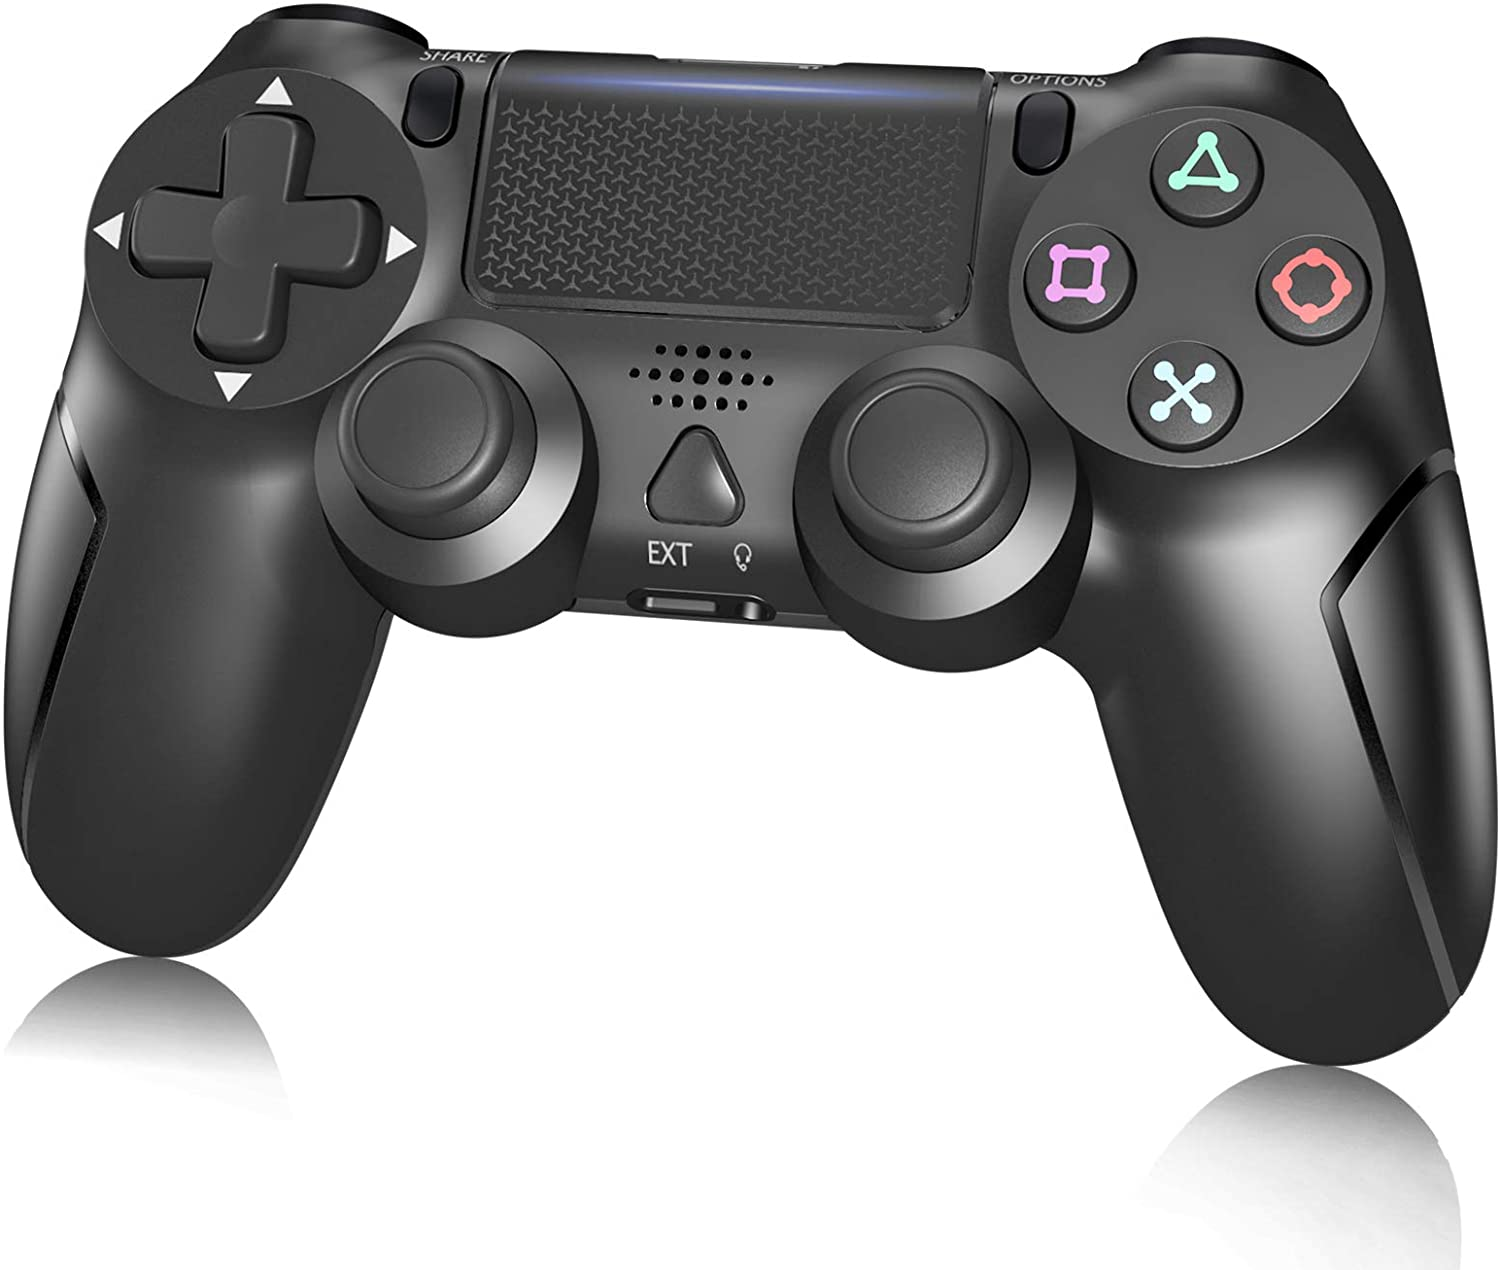 Controller for PS4 Wireless Gamepad for Playstation 4/Slim/Pro with Motion Motors,Gyro Function,Speaker and USB Cable-Black